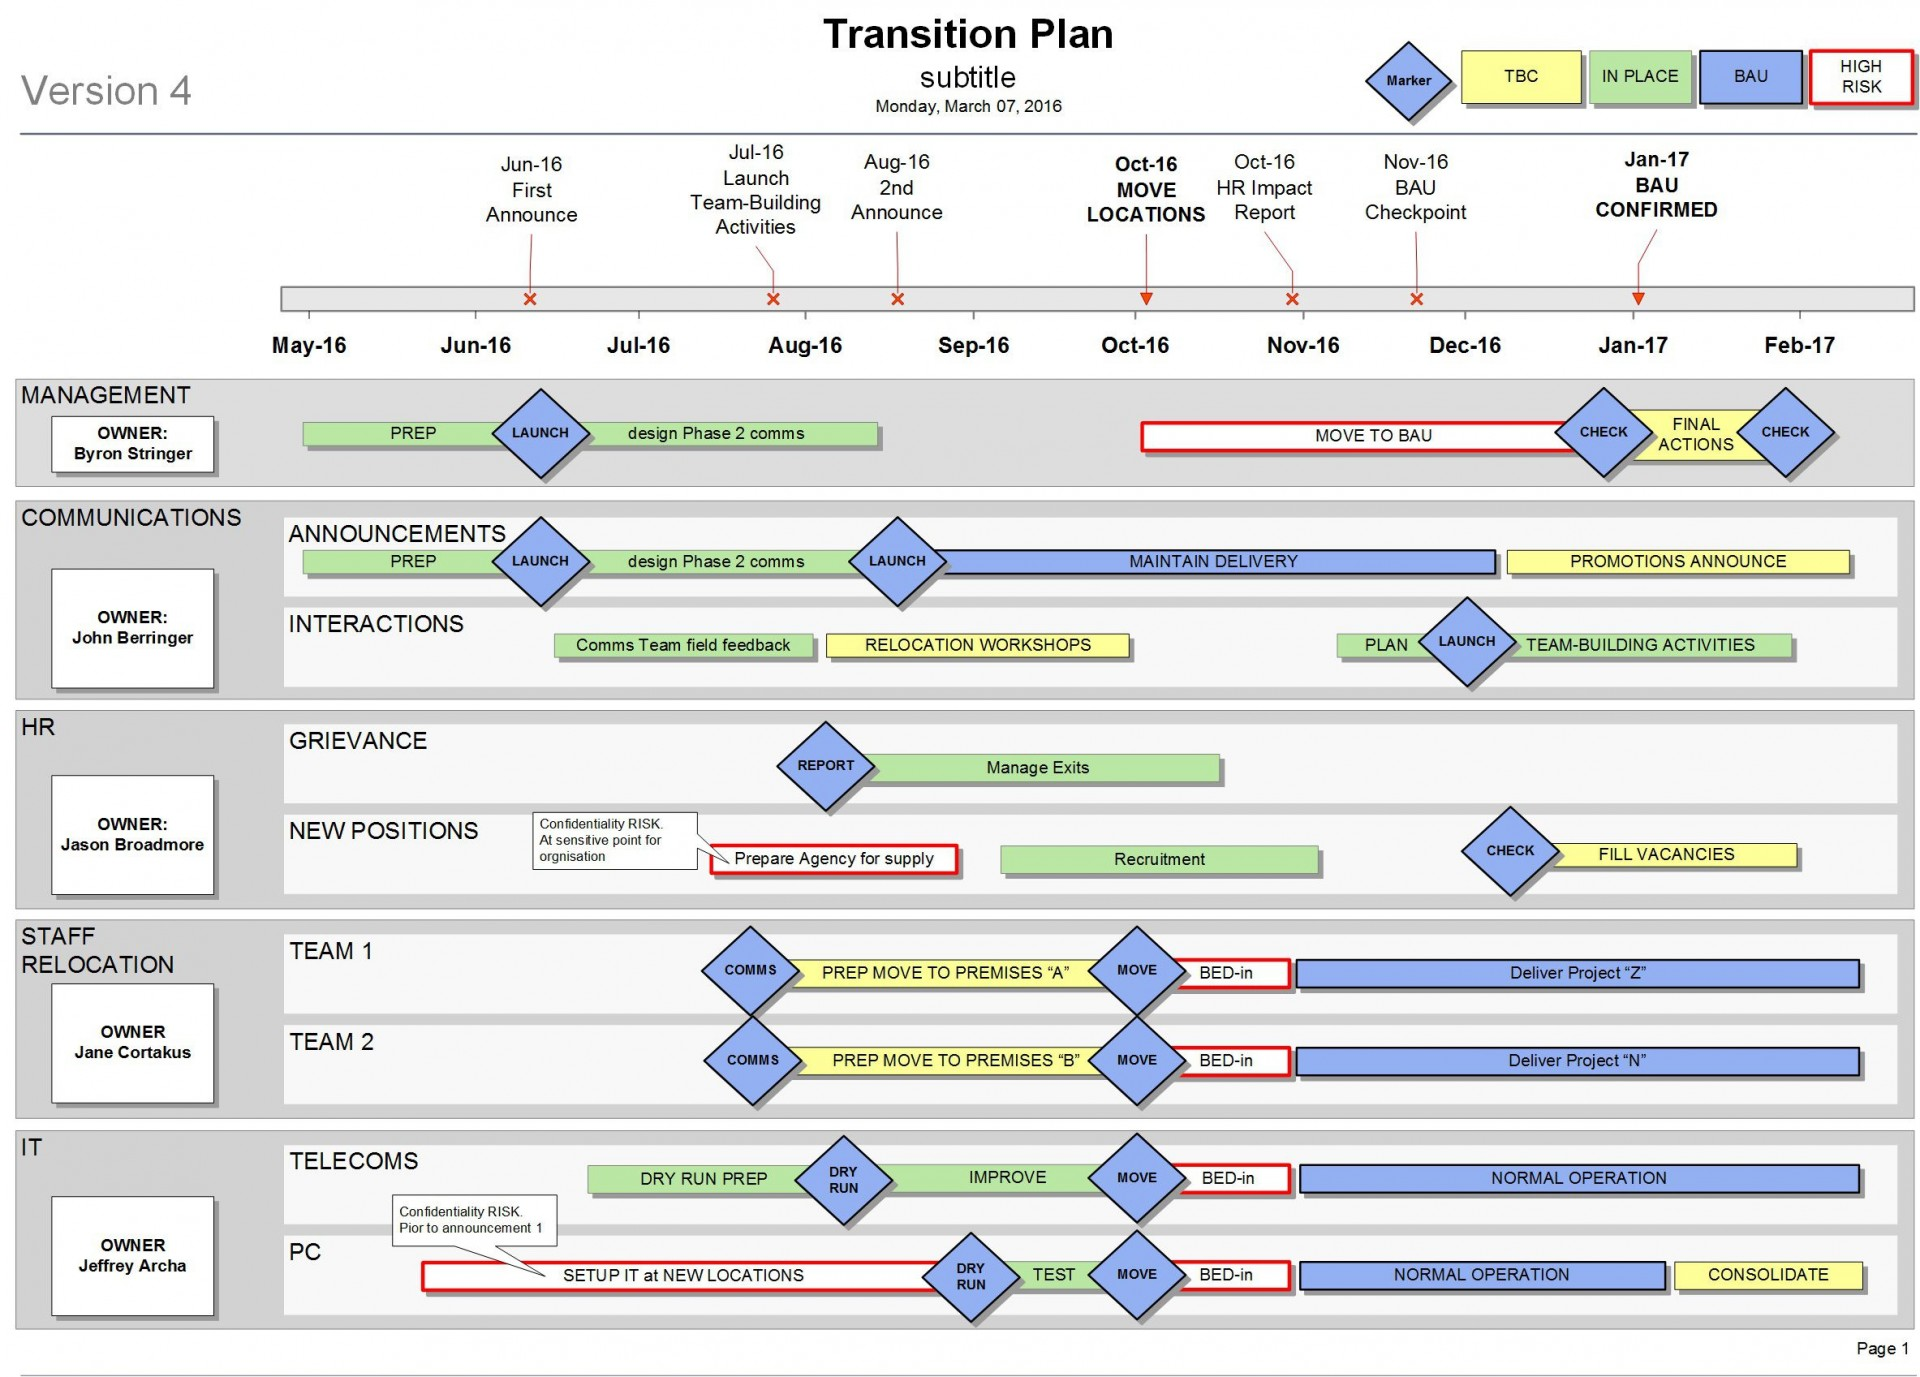 000 Amazing Project Transition Plan Template High Def  Excel Download Software Sample1920